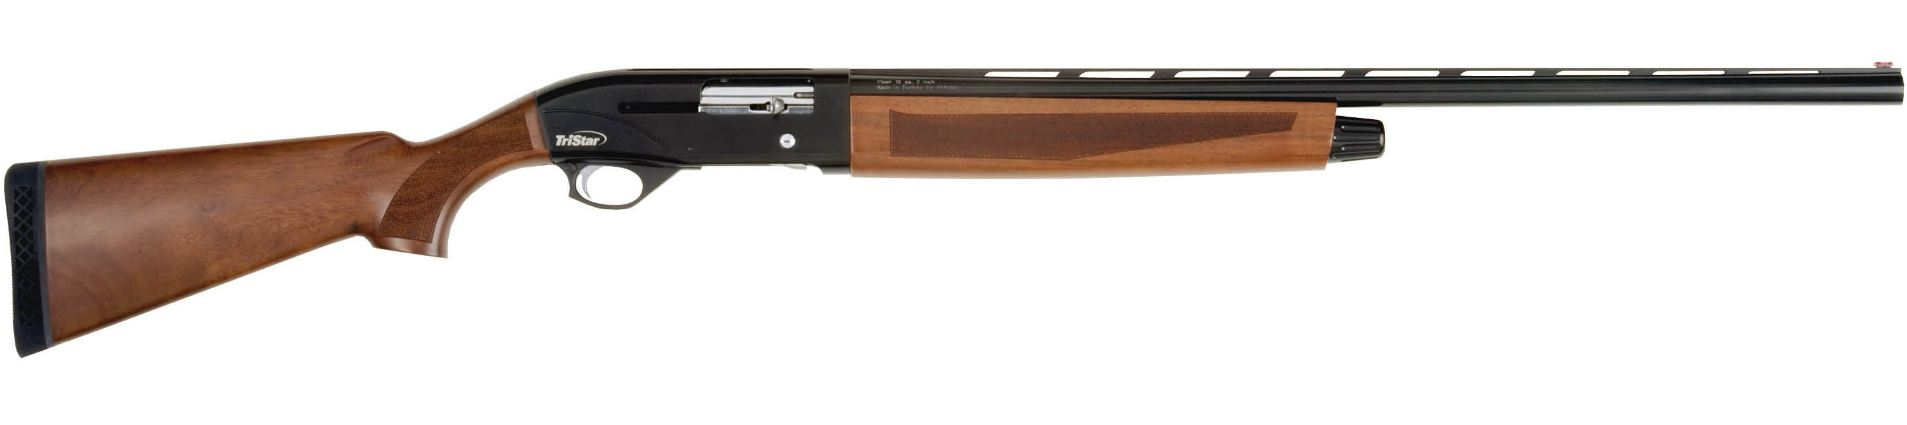 TriStar Sporting Arms Viper G2 12 Gauge